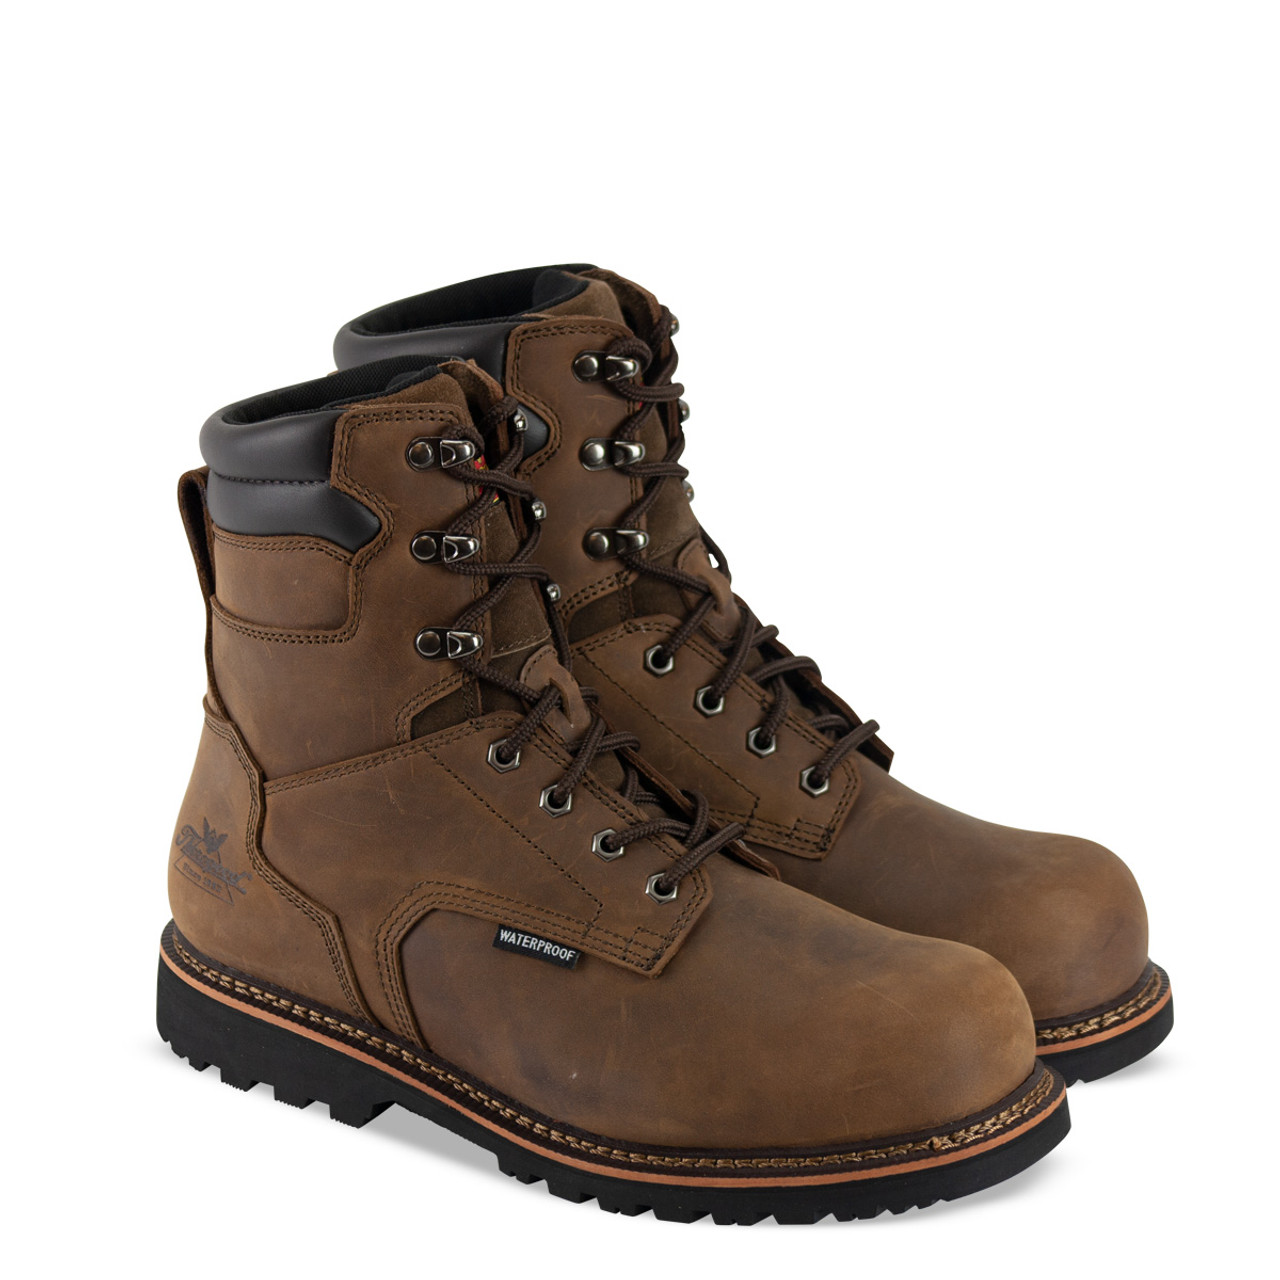 THOROGOOD V-SERIES WATERPROOF – 8″ CRAZYHORSE SAFETY TOE BOOTS  804-3237